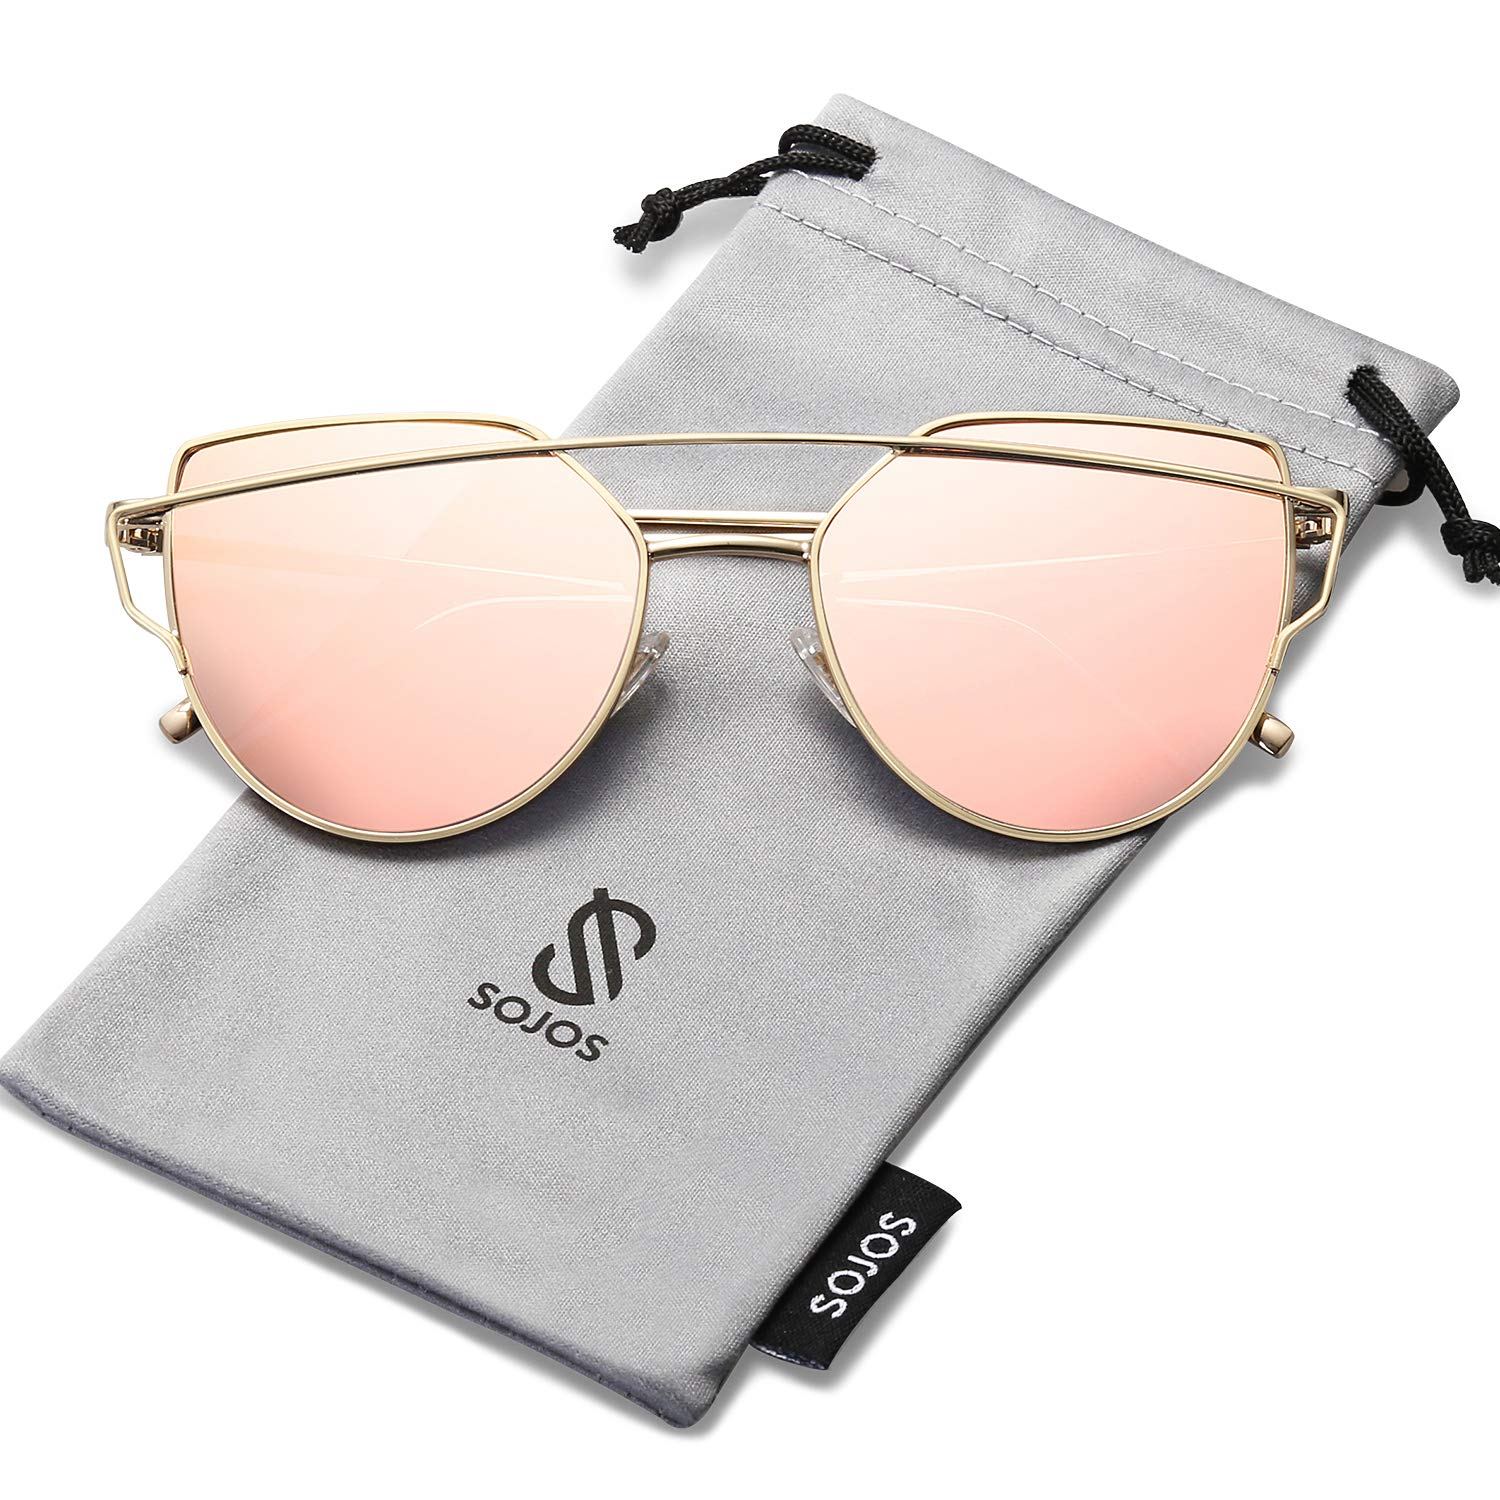 SOJOS Cat Eye Mirrored Flat Lenses Street Fashion Metal Frame Women Sunglasses SJ1001 with Gold Frame/Pink Mirrored Lens by SOJOS